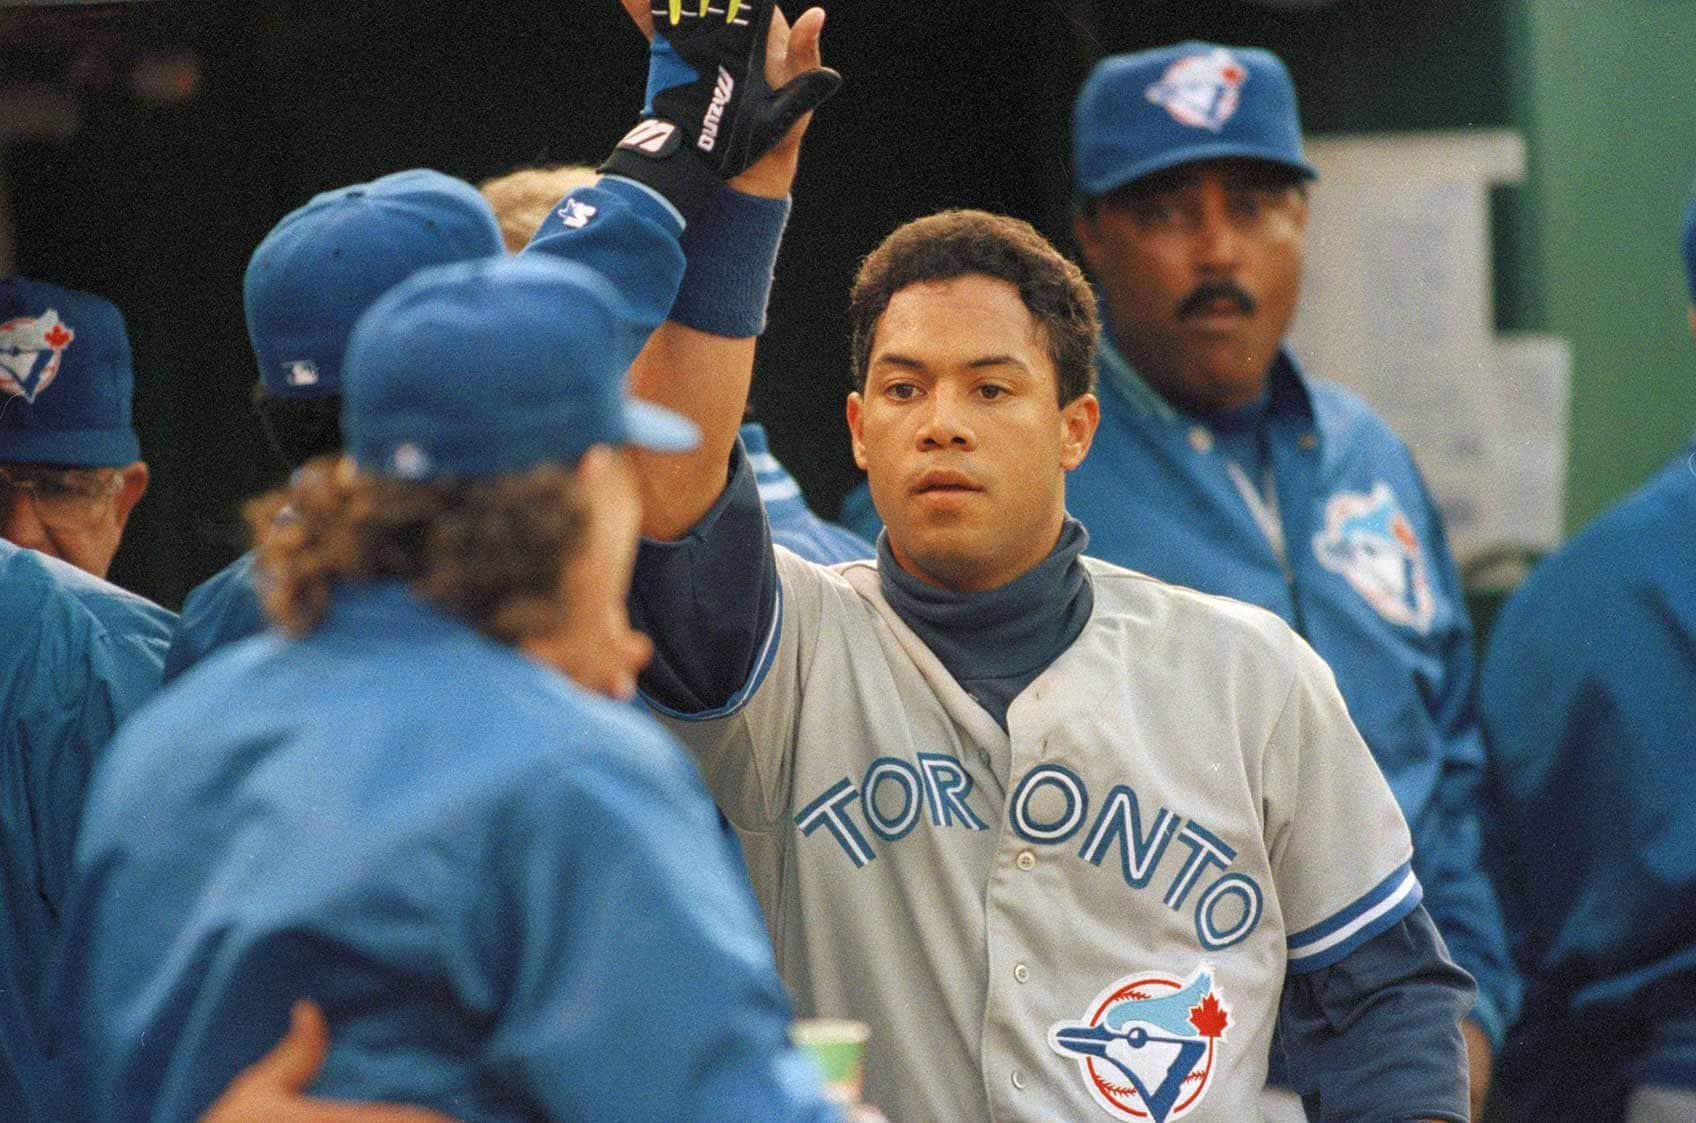 Toronto Blue Jays second baseman Roberto Alomar is congratulated by teammates after hitting a homrerun against the Oakland A's, at the Oakland Coliseum, May 5, 1992.